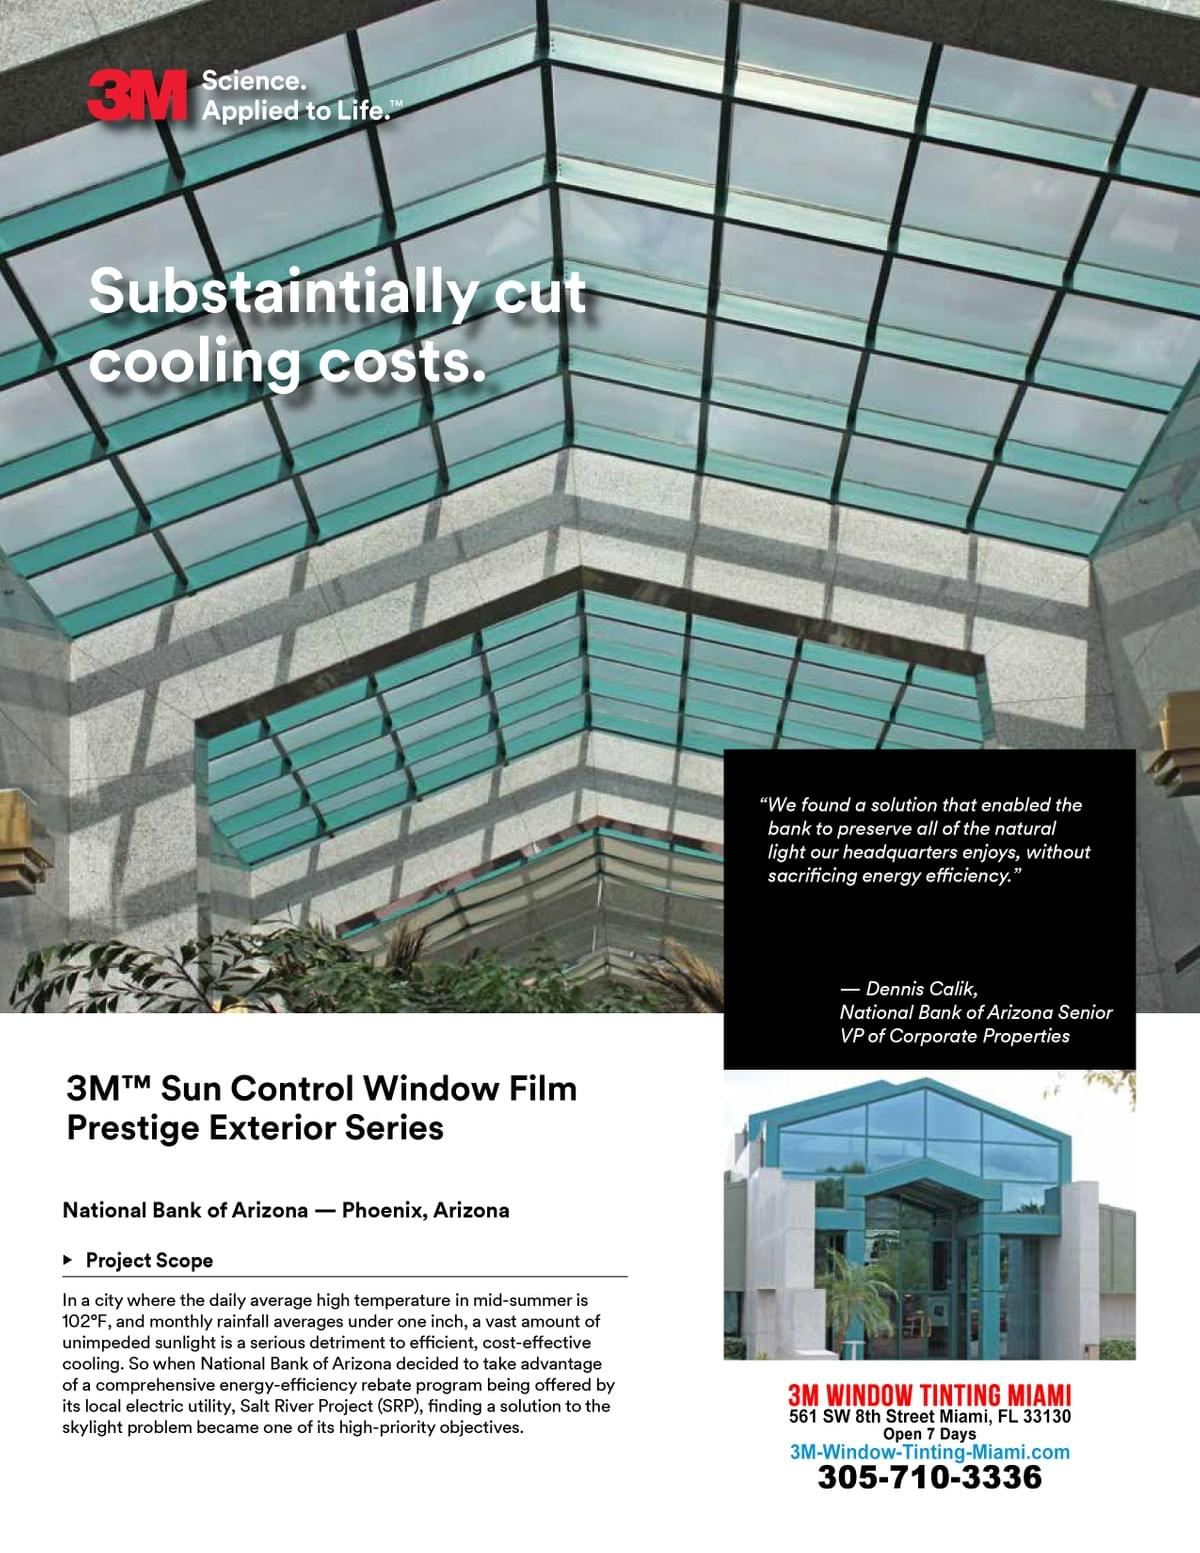 3M Prestige Window Tinting Miami, 3M commercial window tinting Miami